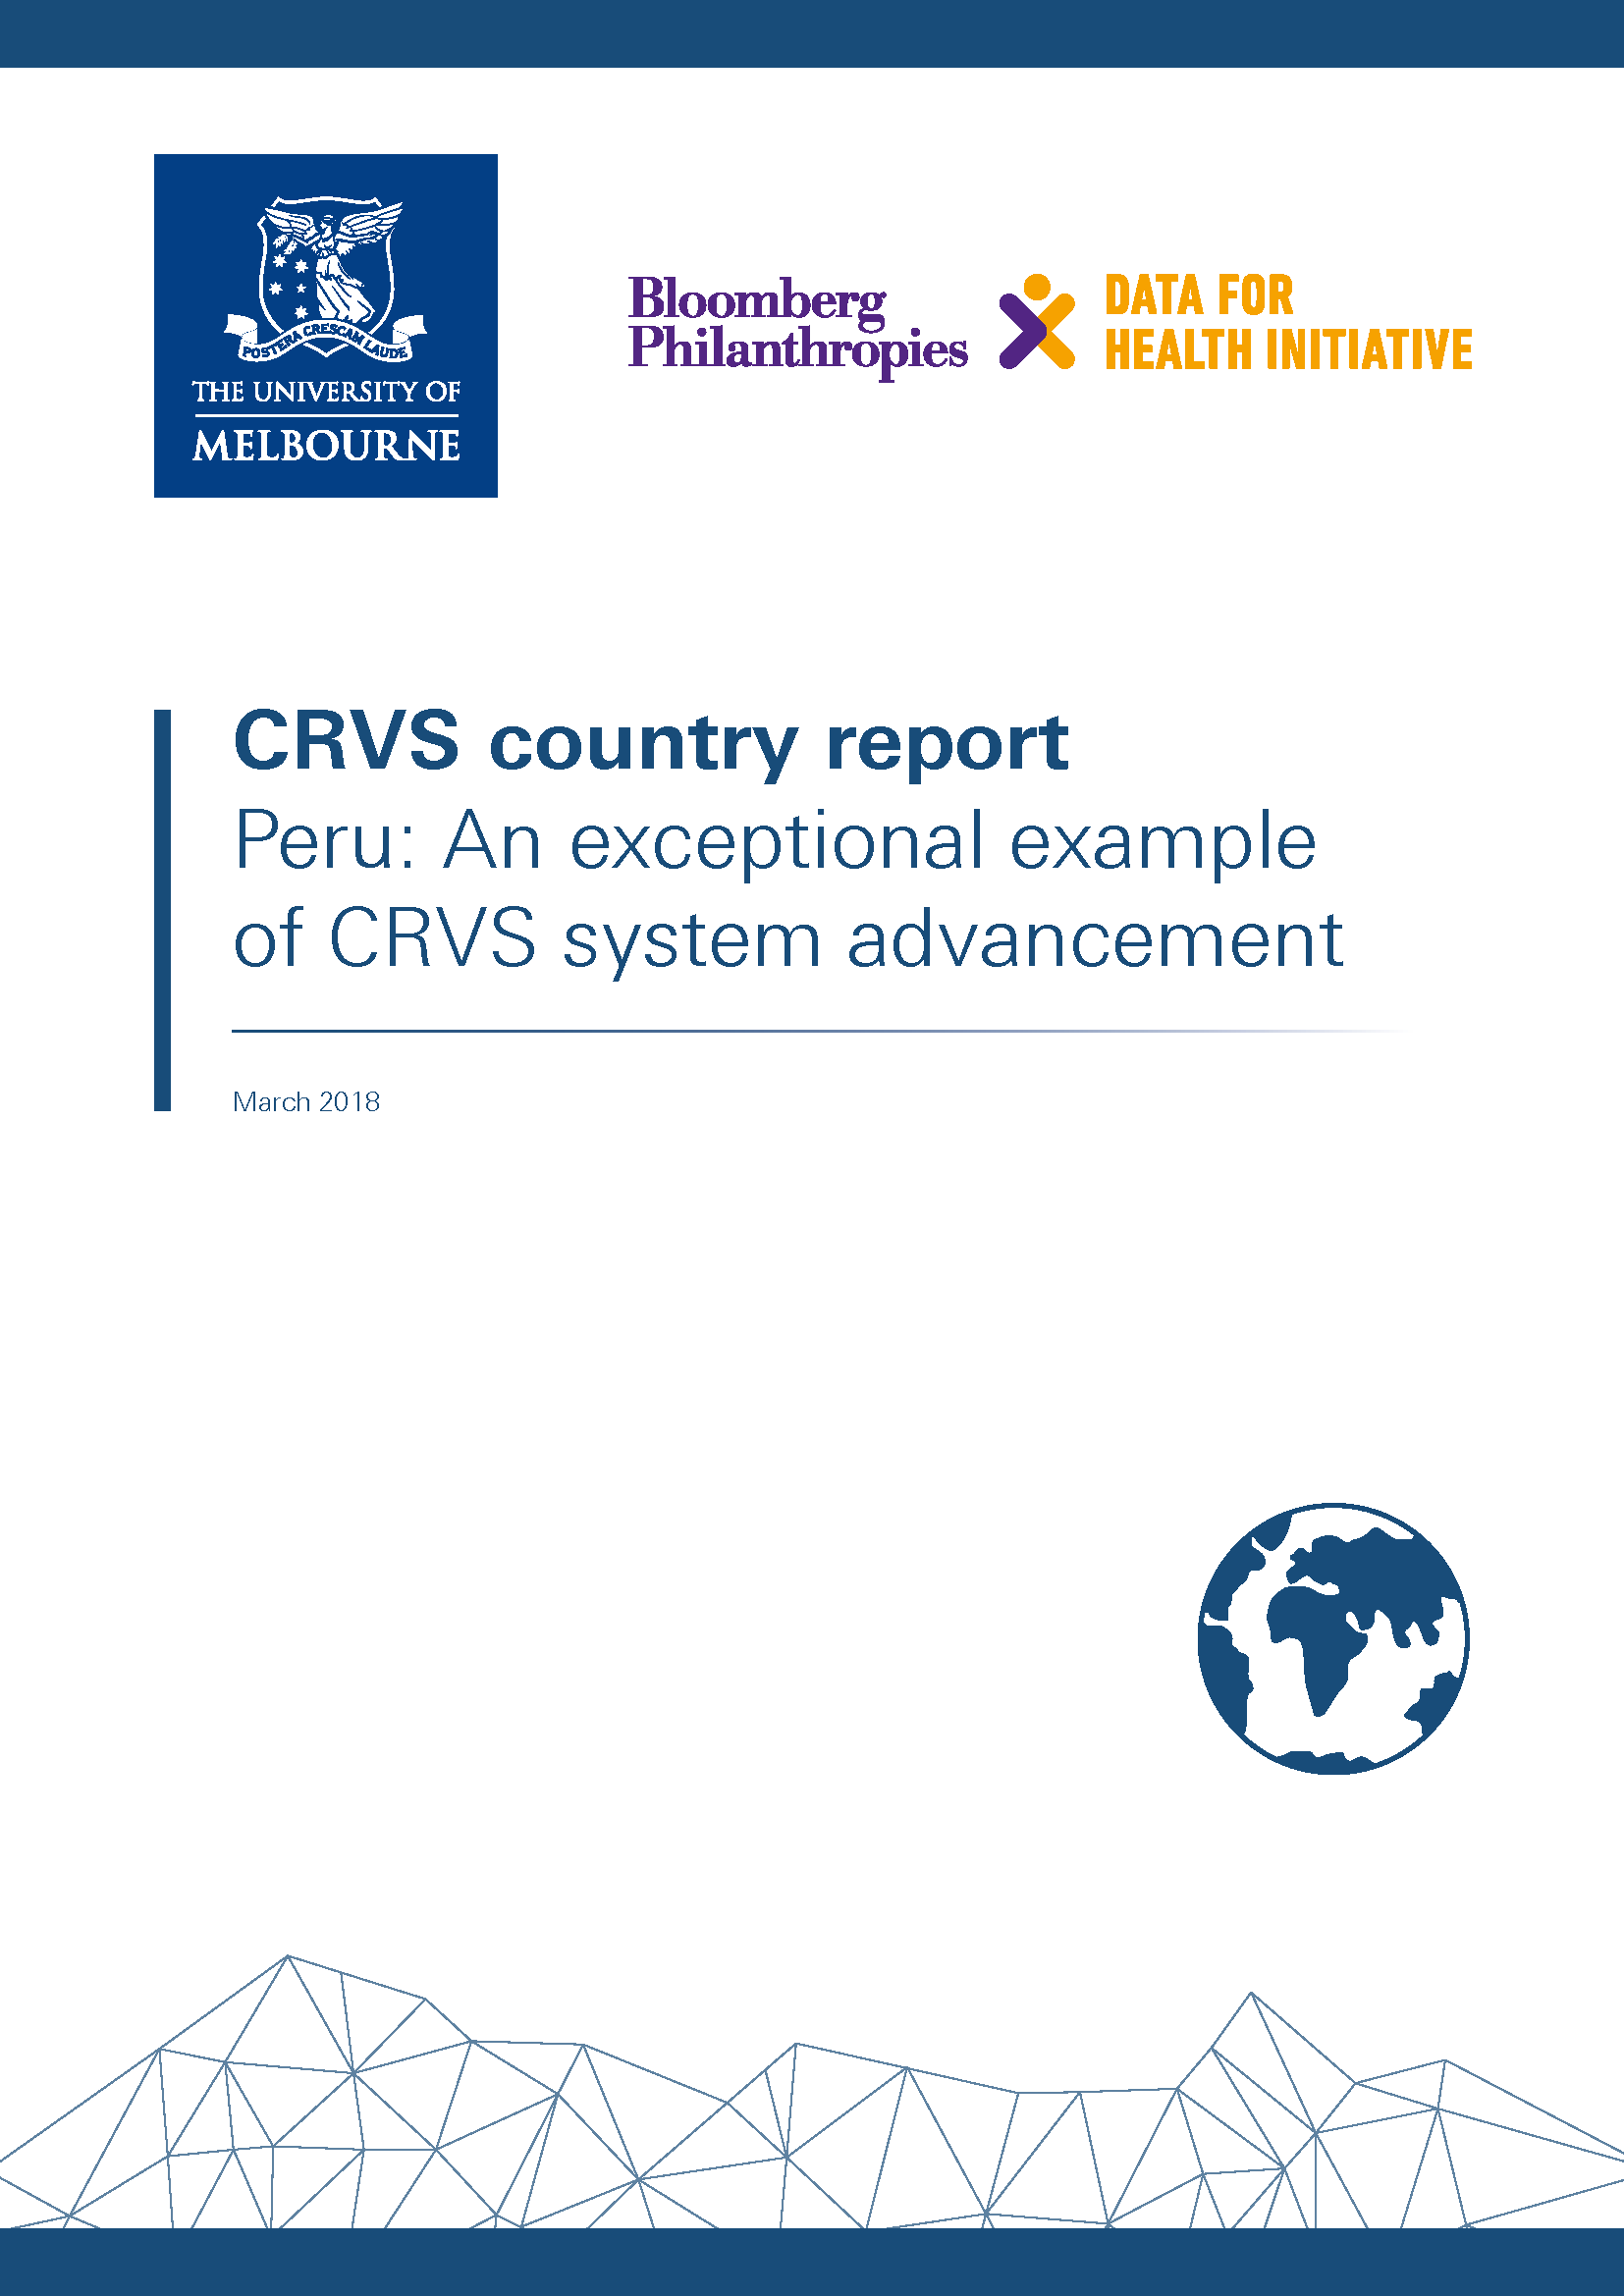 Peru: An exceptional example of CRVS system advancement thumbnail